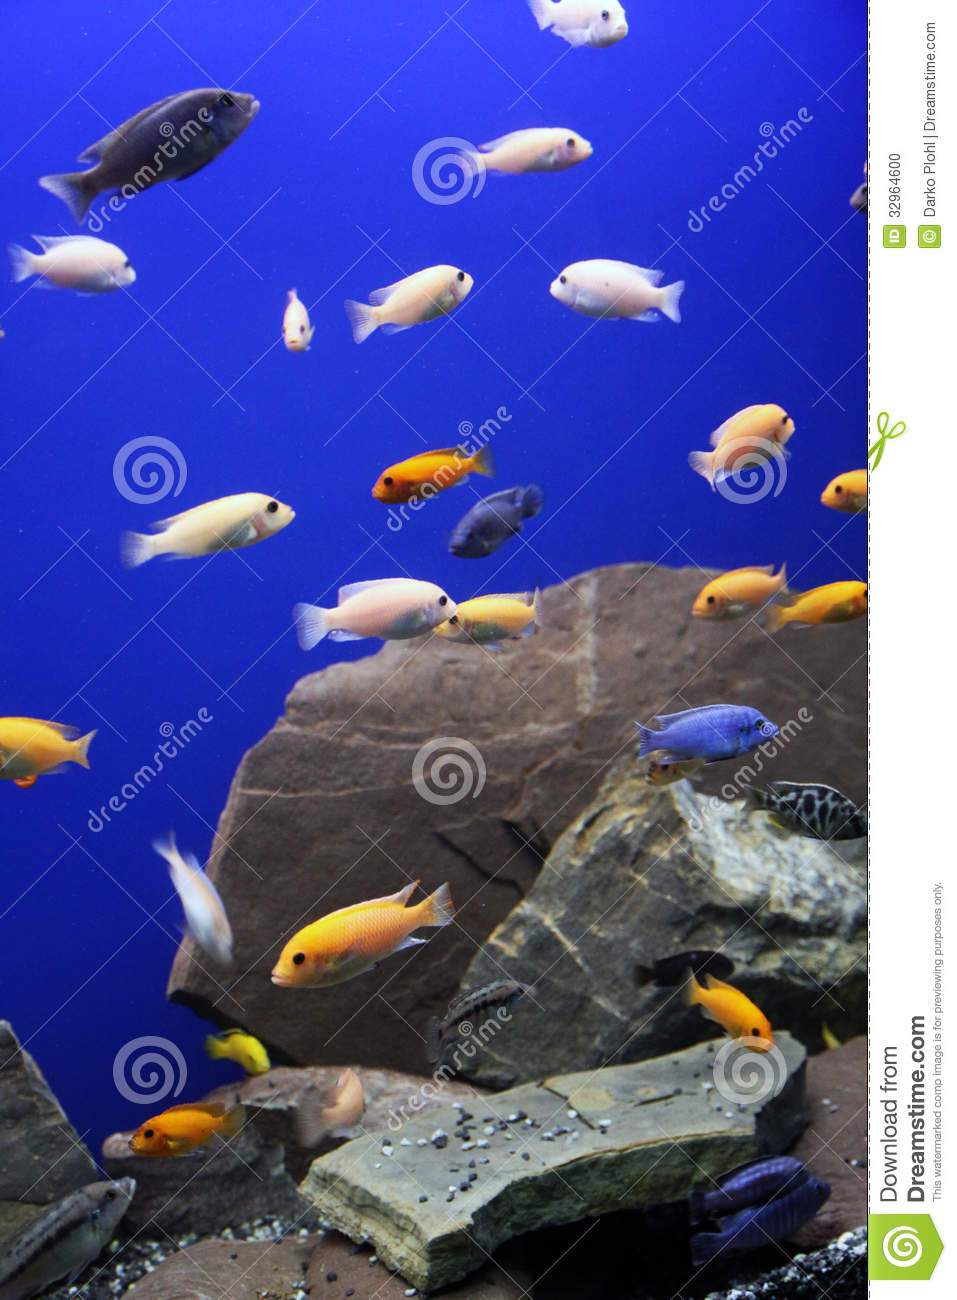 Black and yellow freshwater aquarium fish - African Cichlid Aquarium Tropical Fish